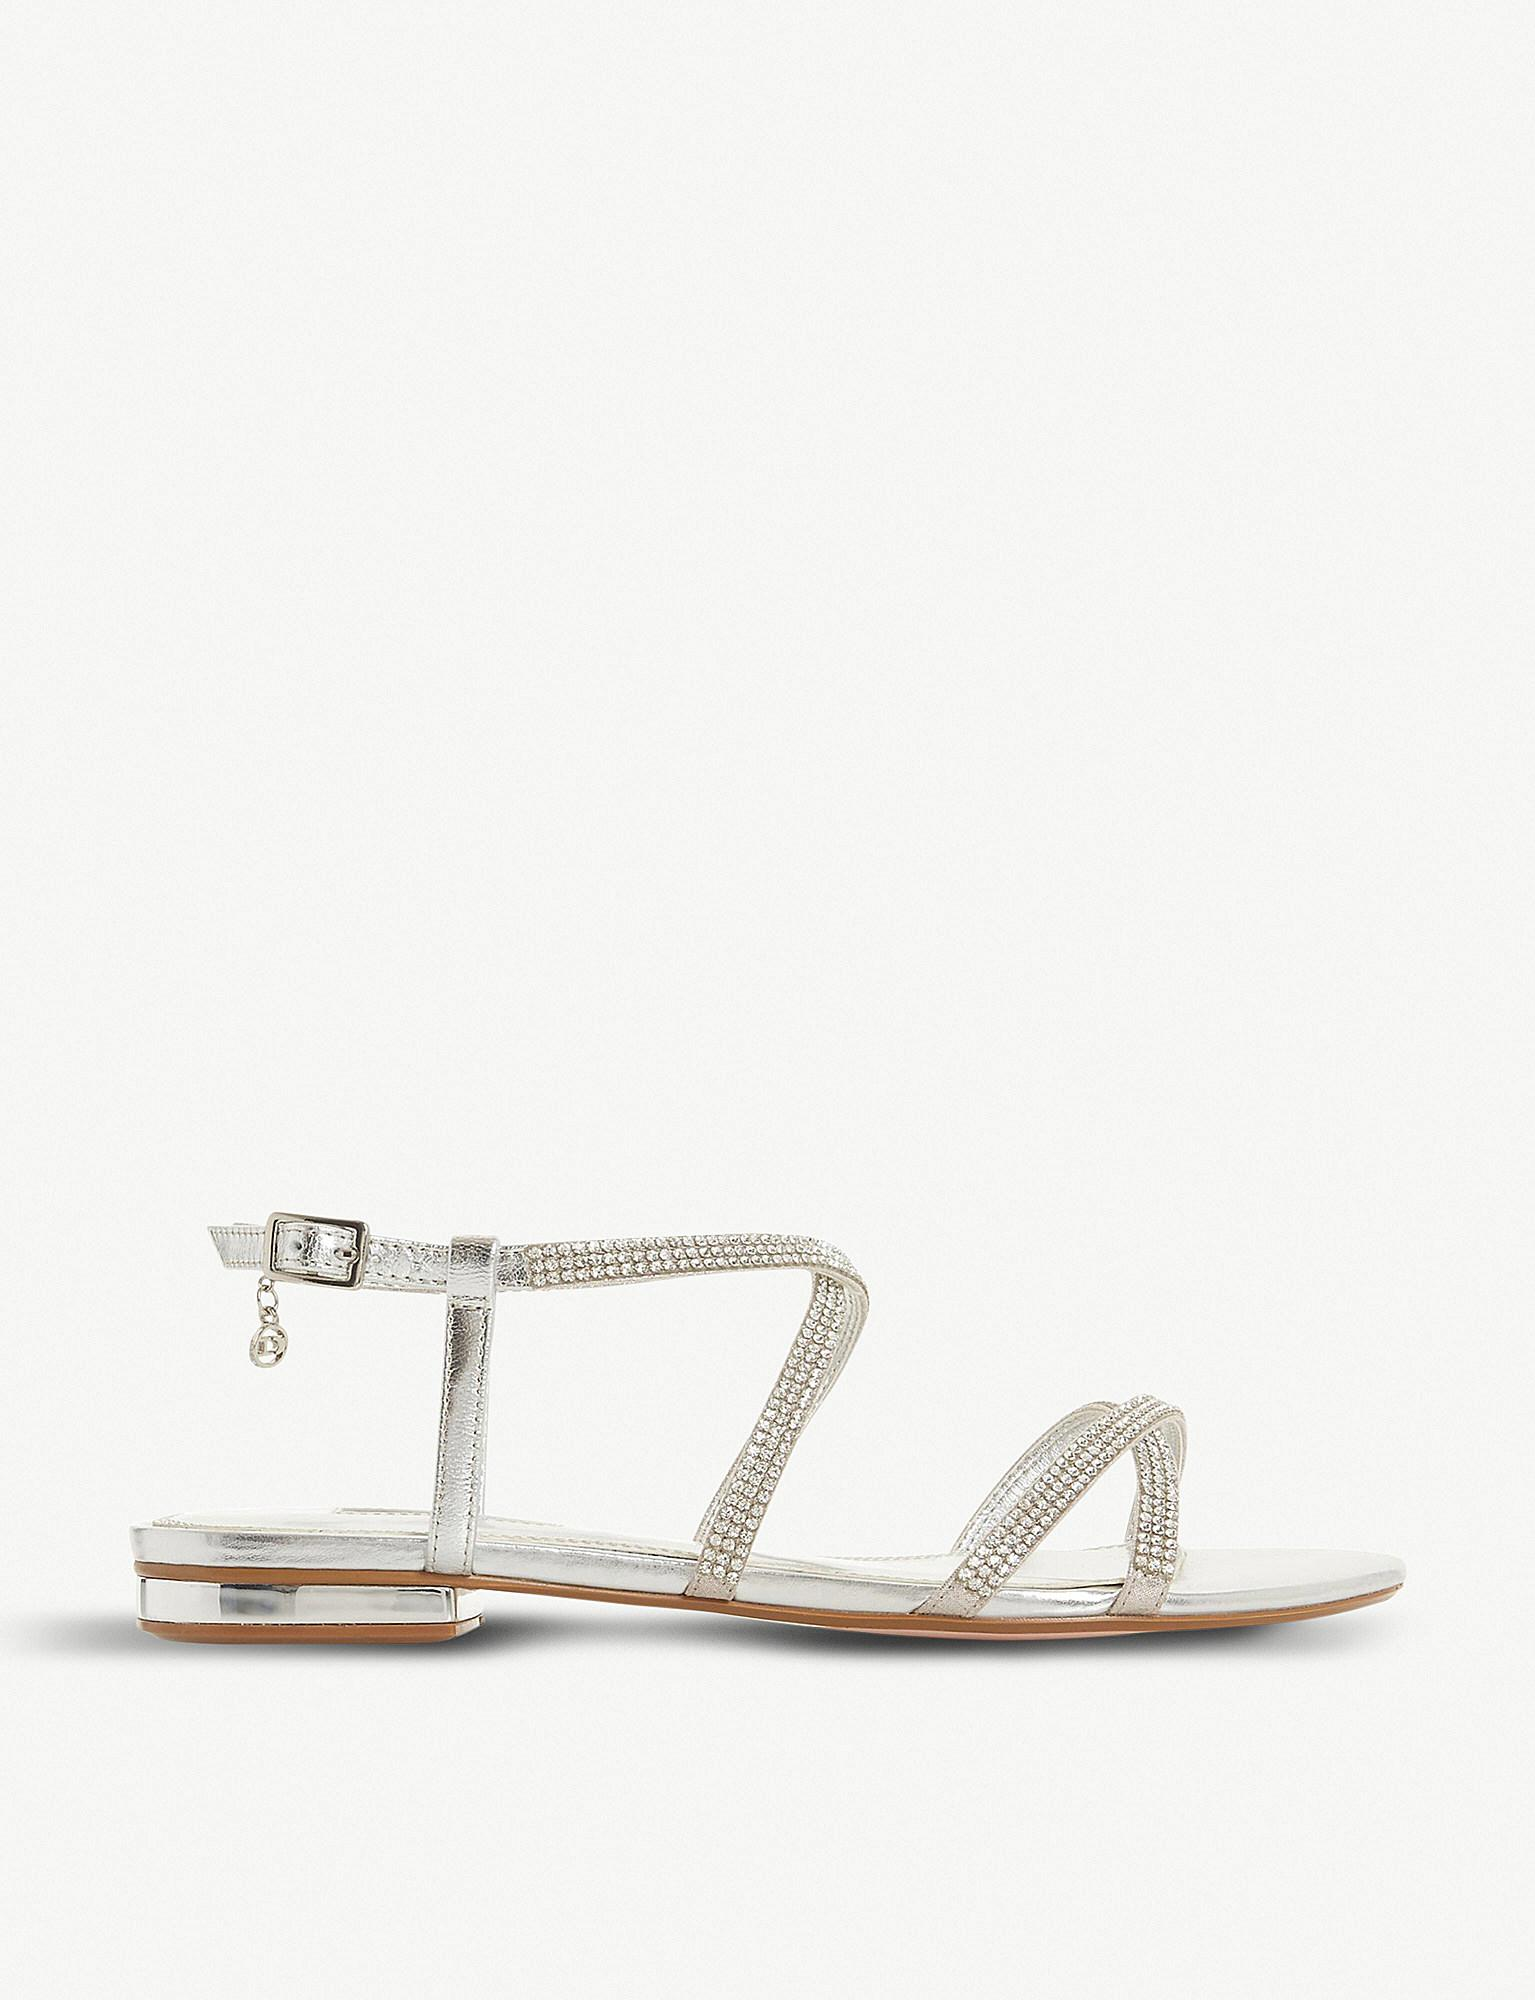 f976c16261c2 Dune Neve Cross-strap Embellished Metallic-leather Sandals in ...